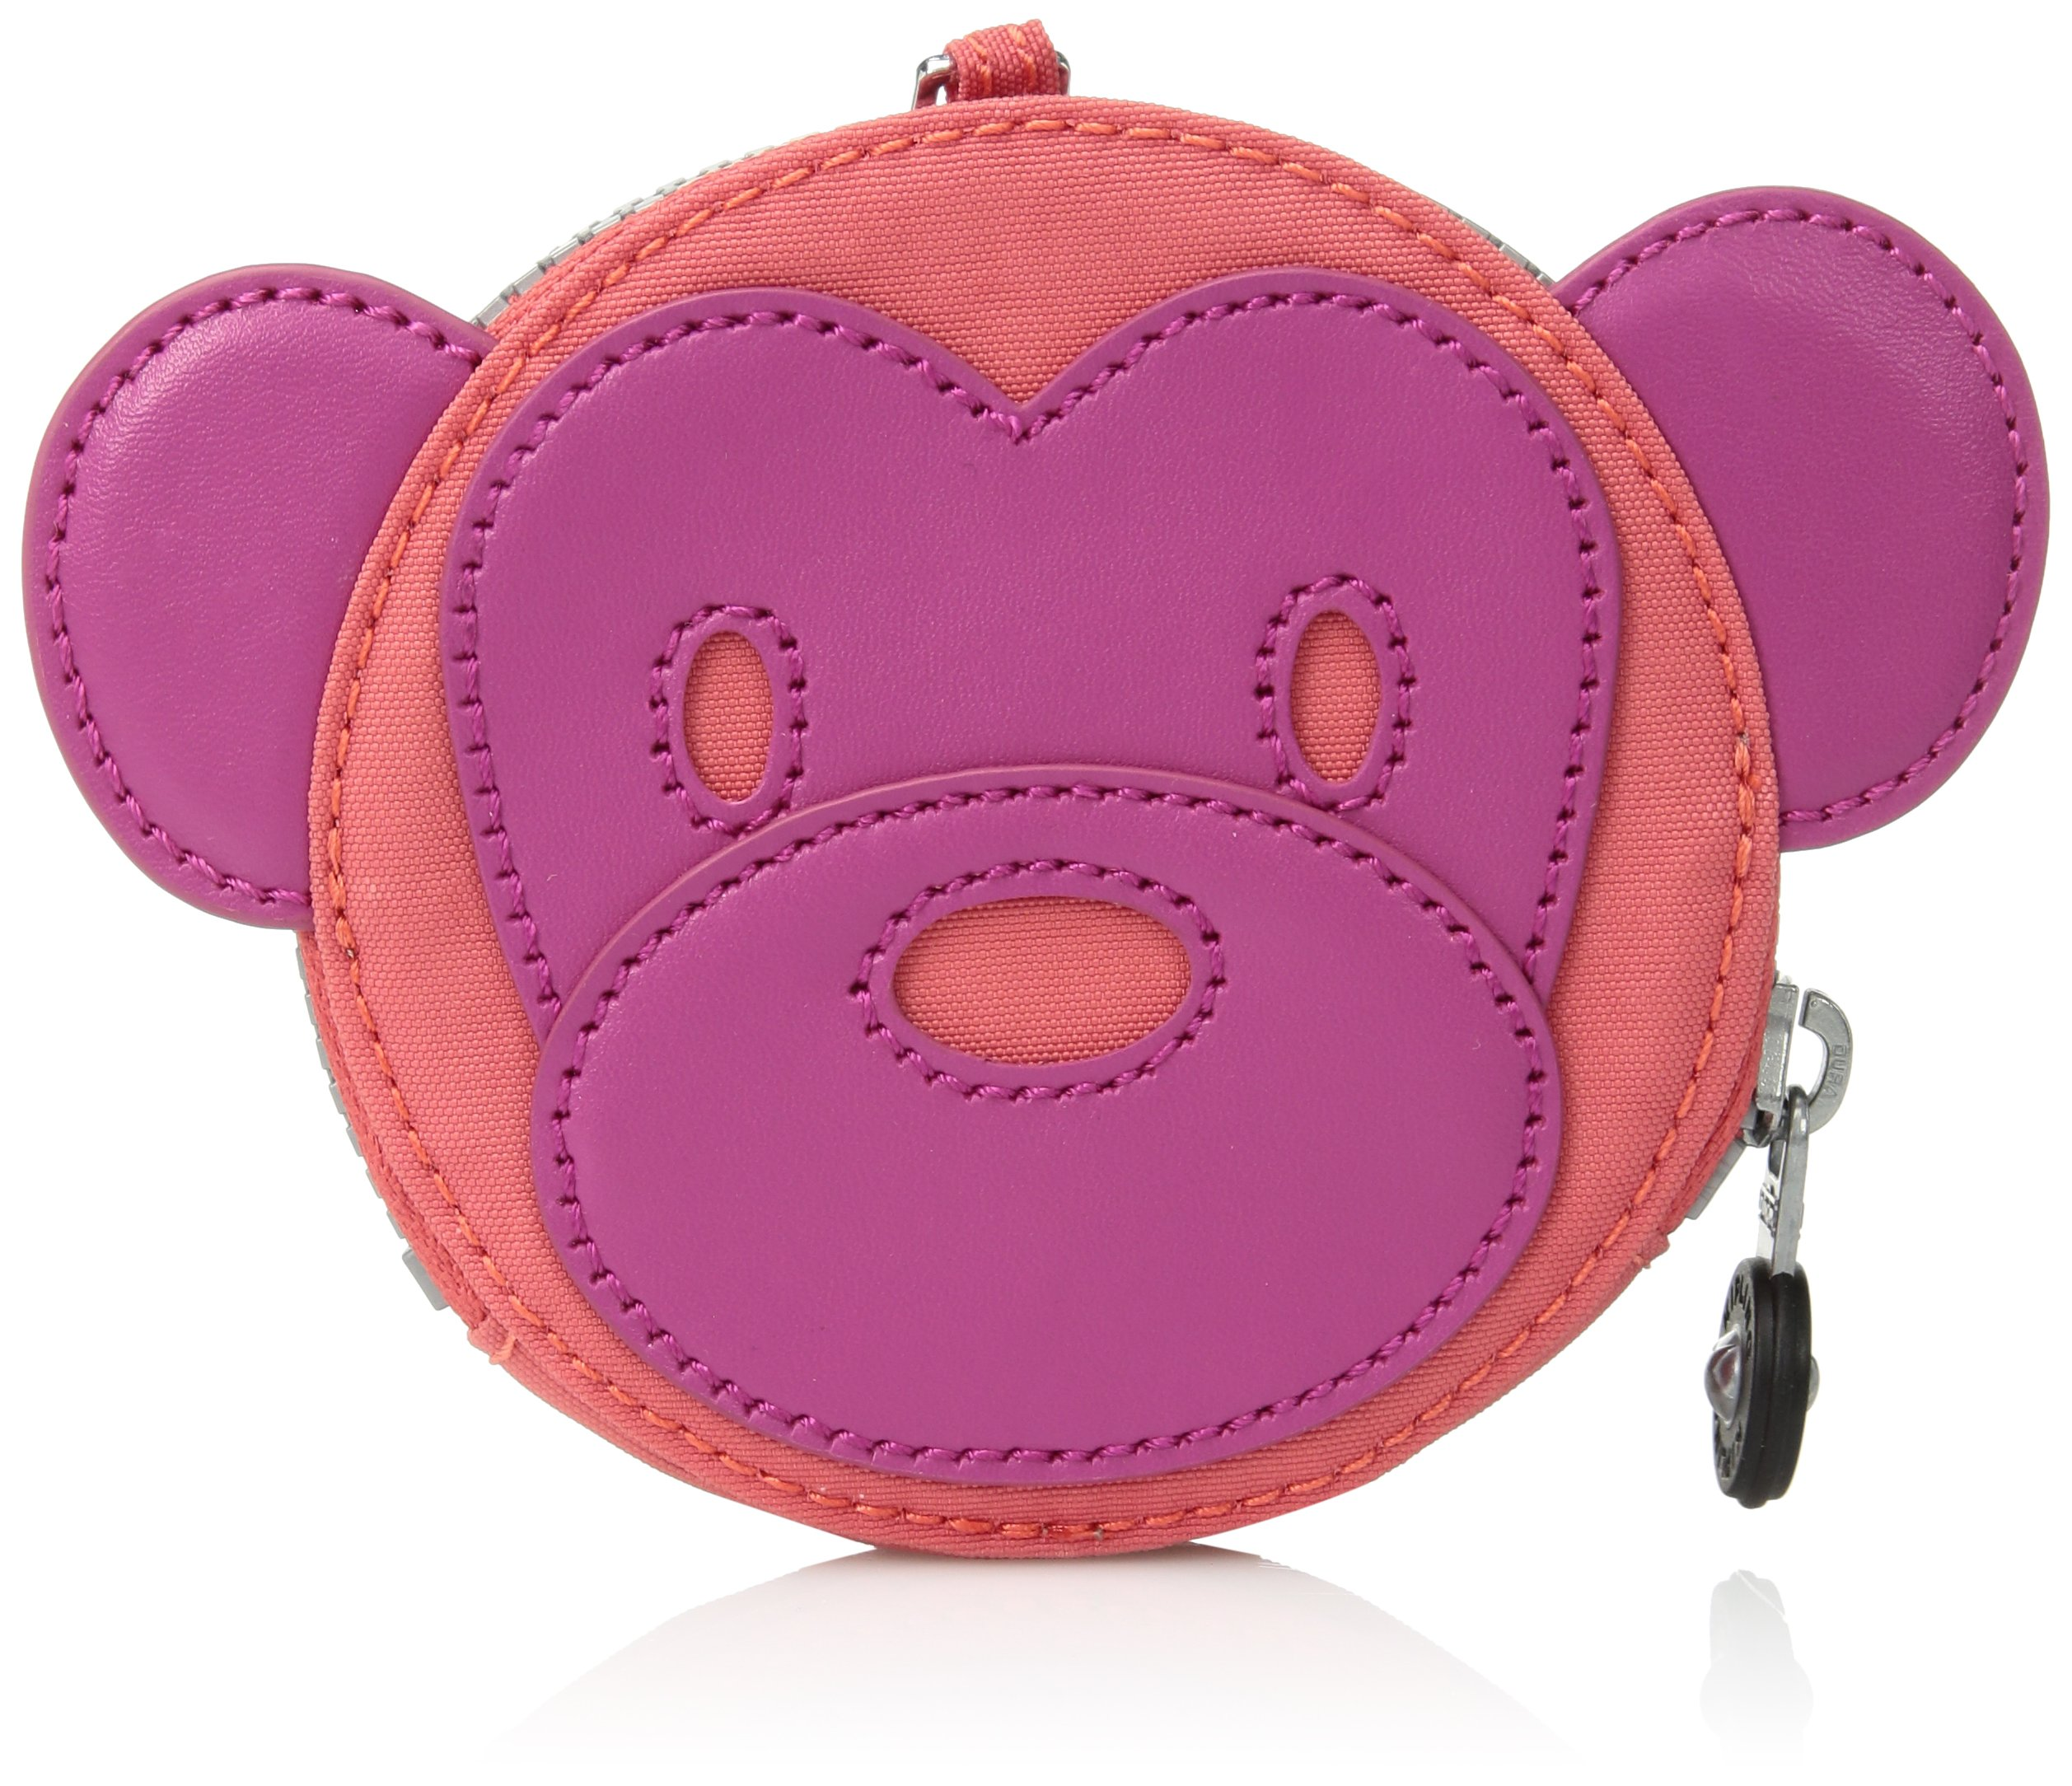 Kipling Monkey Marguerite Very Berry Coin Purse, Vryberryco